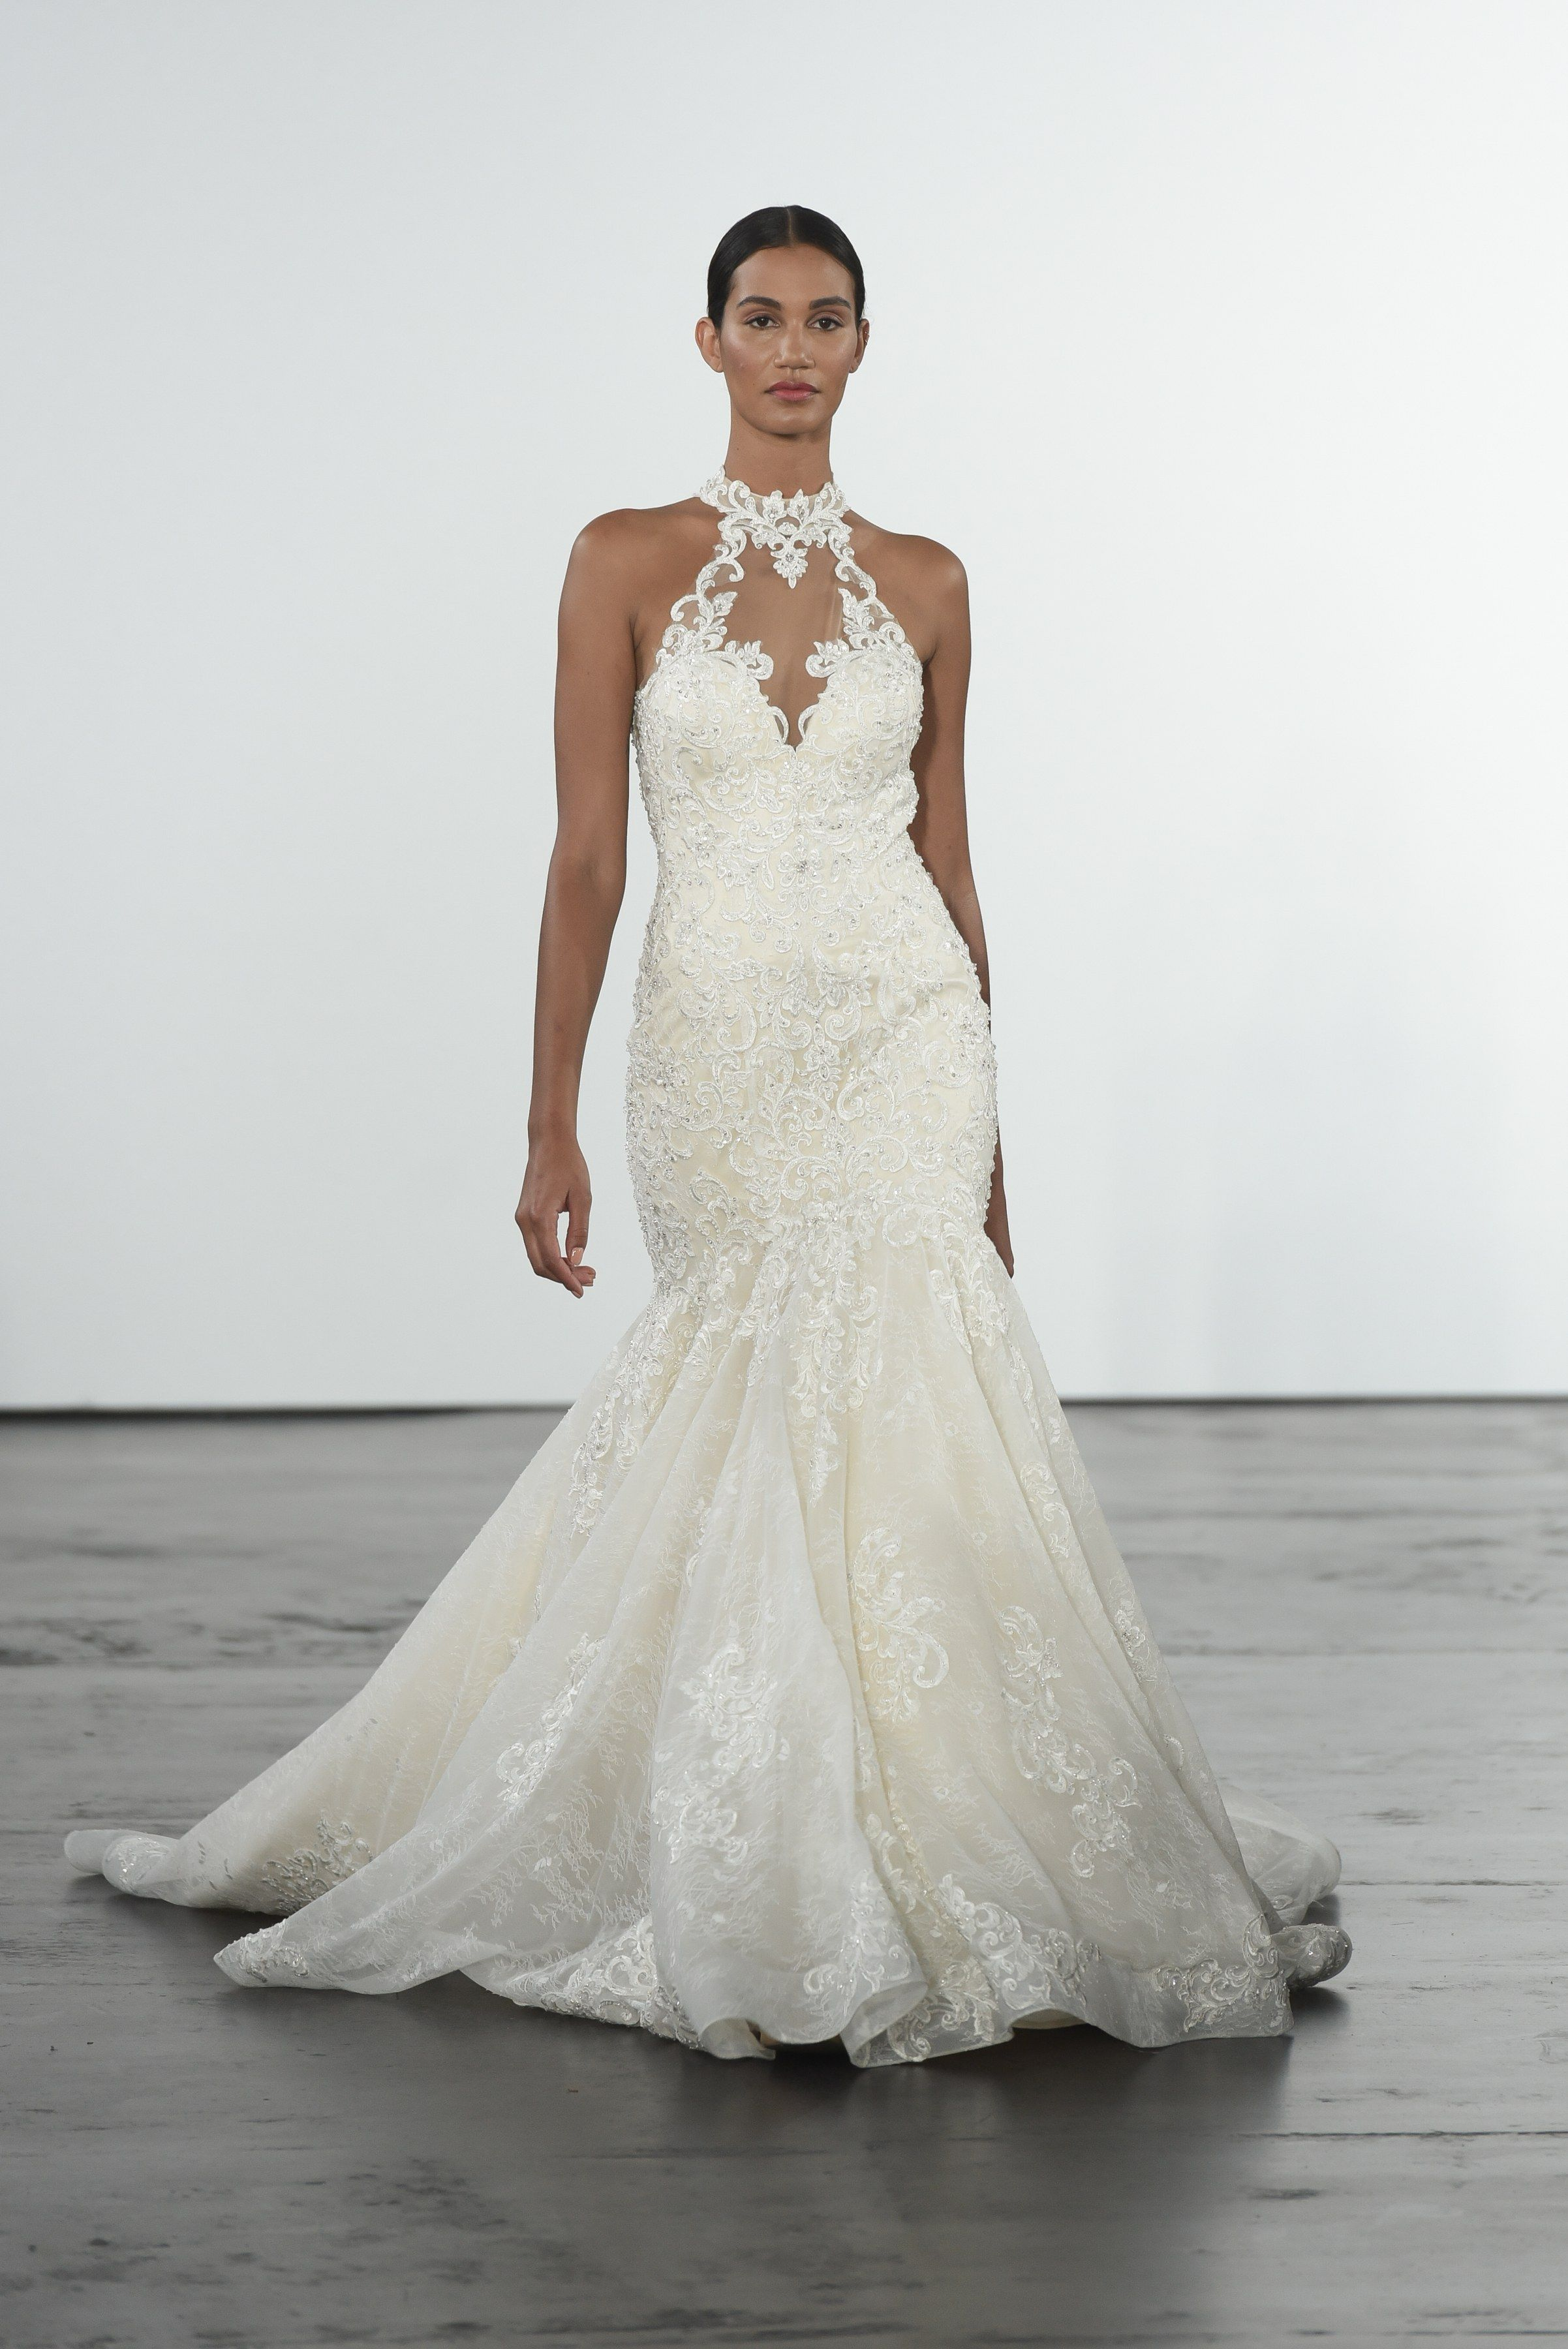 Dennis basso for kleinfeld bridal u wedding dress collection fall